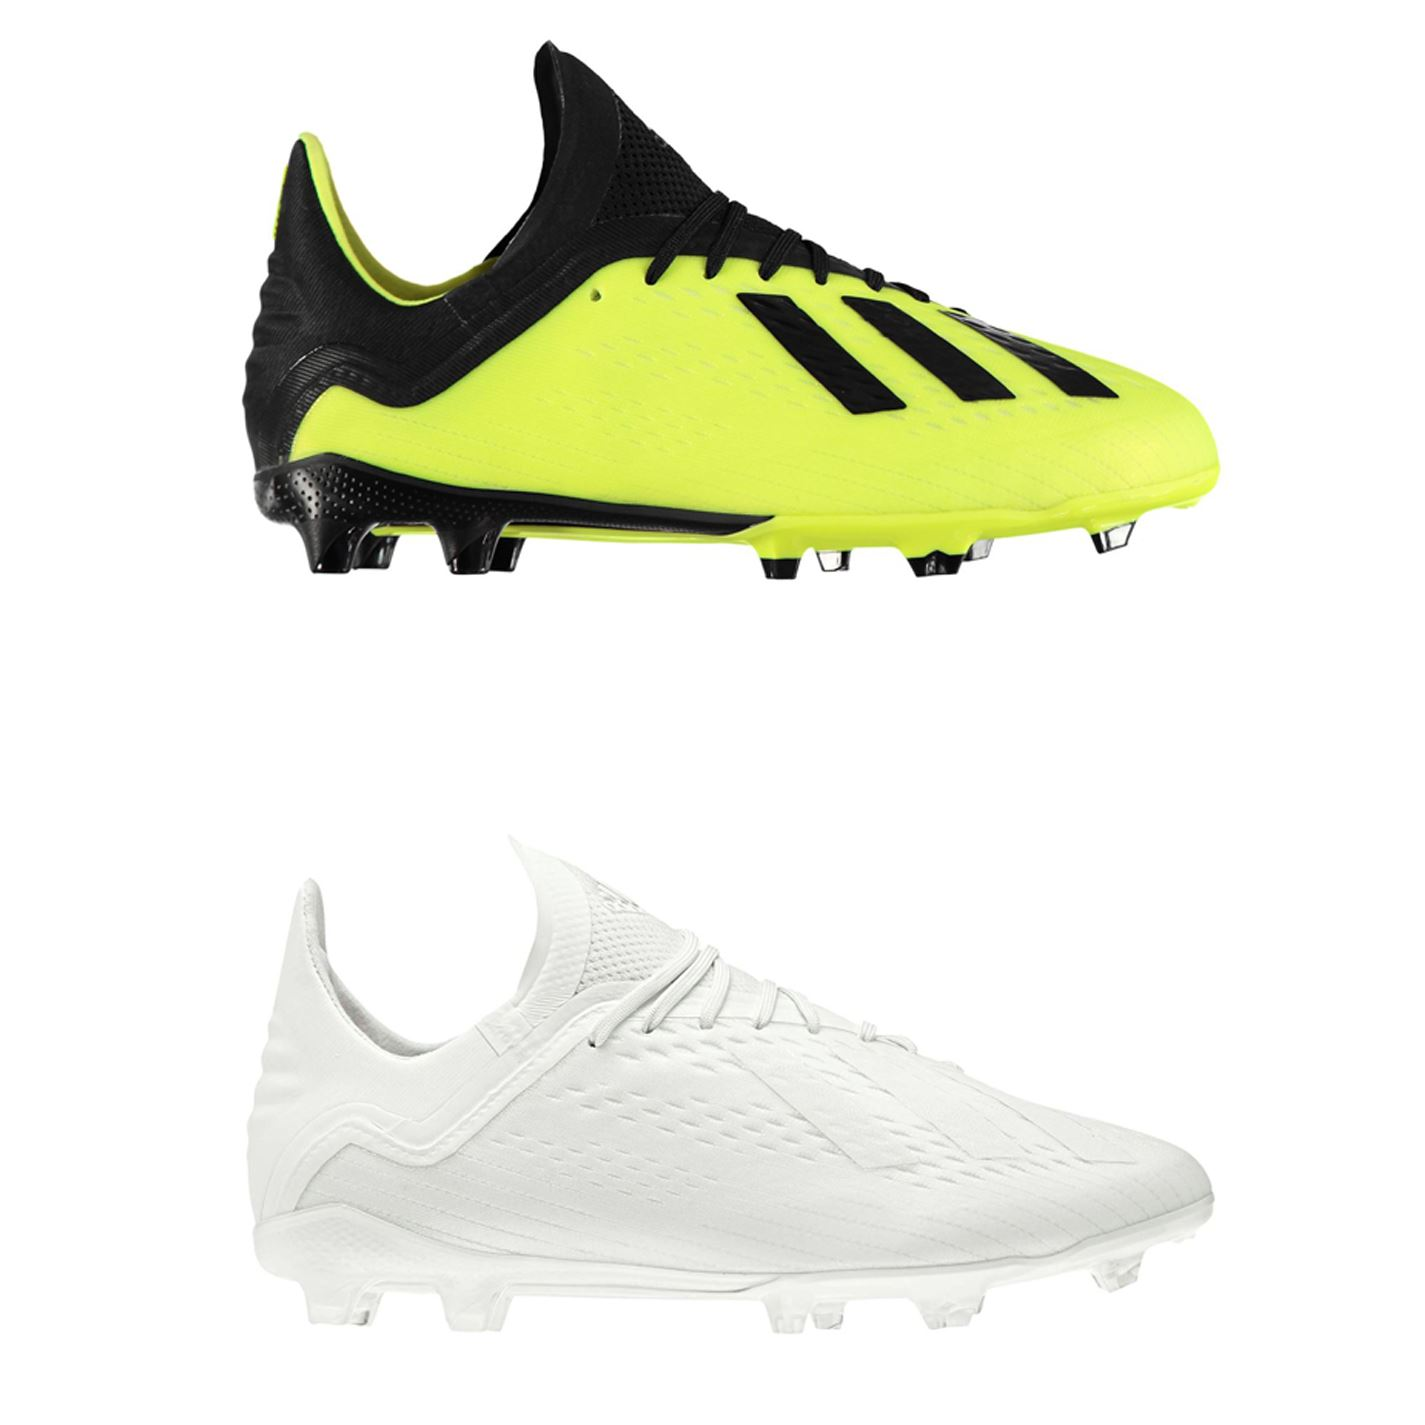 a4f935482a9 ... adidas X 18.1 FG Firm Ground Football Boots Childs Soccer Shoes Cleats  ...